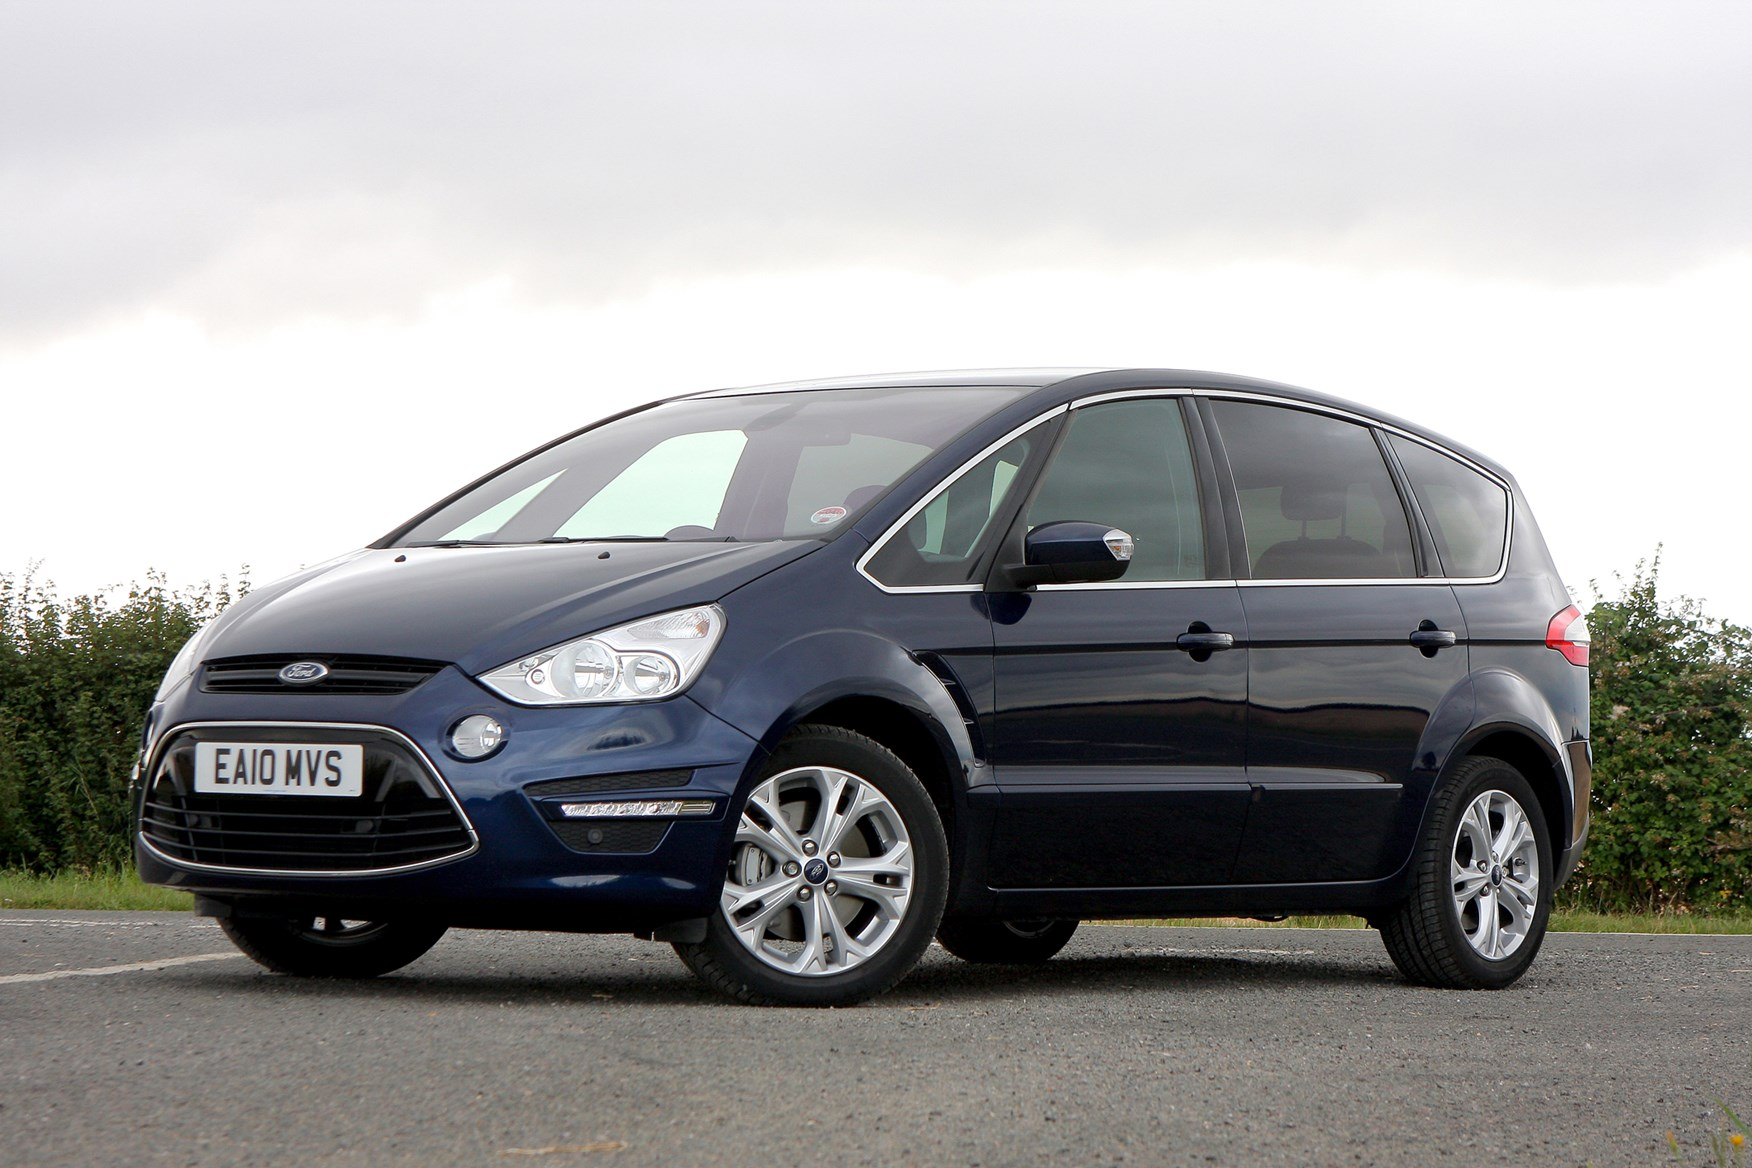 ford s max estate 2006 2014 features equipment and accessories parkers. Black Bedroom Furniture Sets. Home Design Ideas